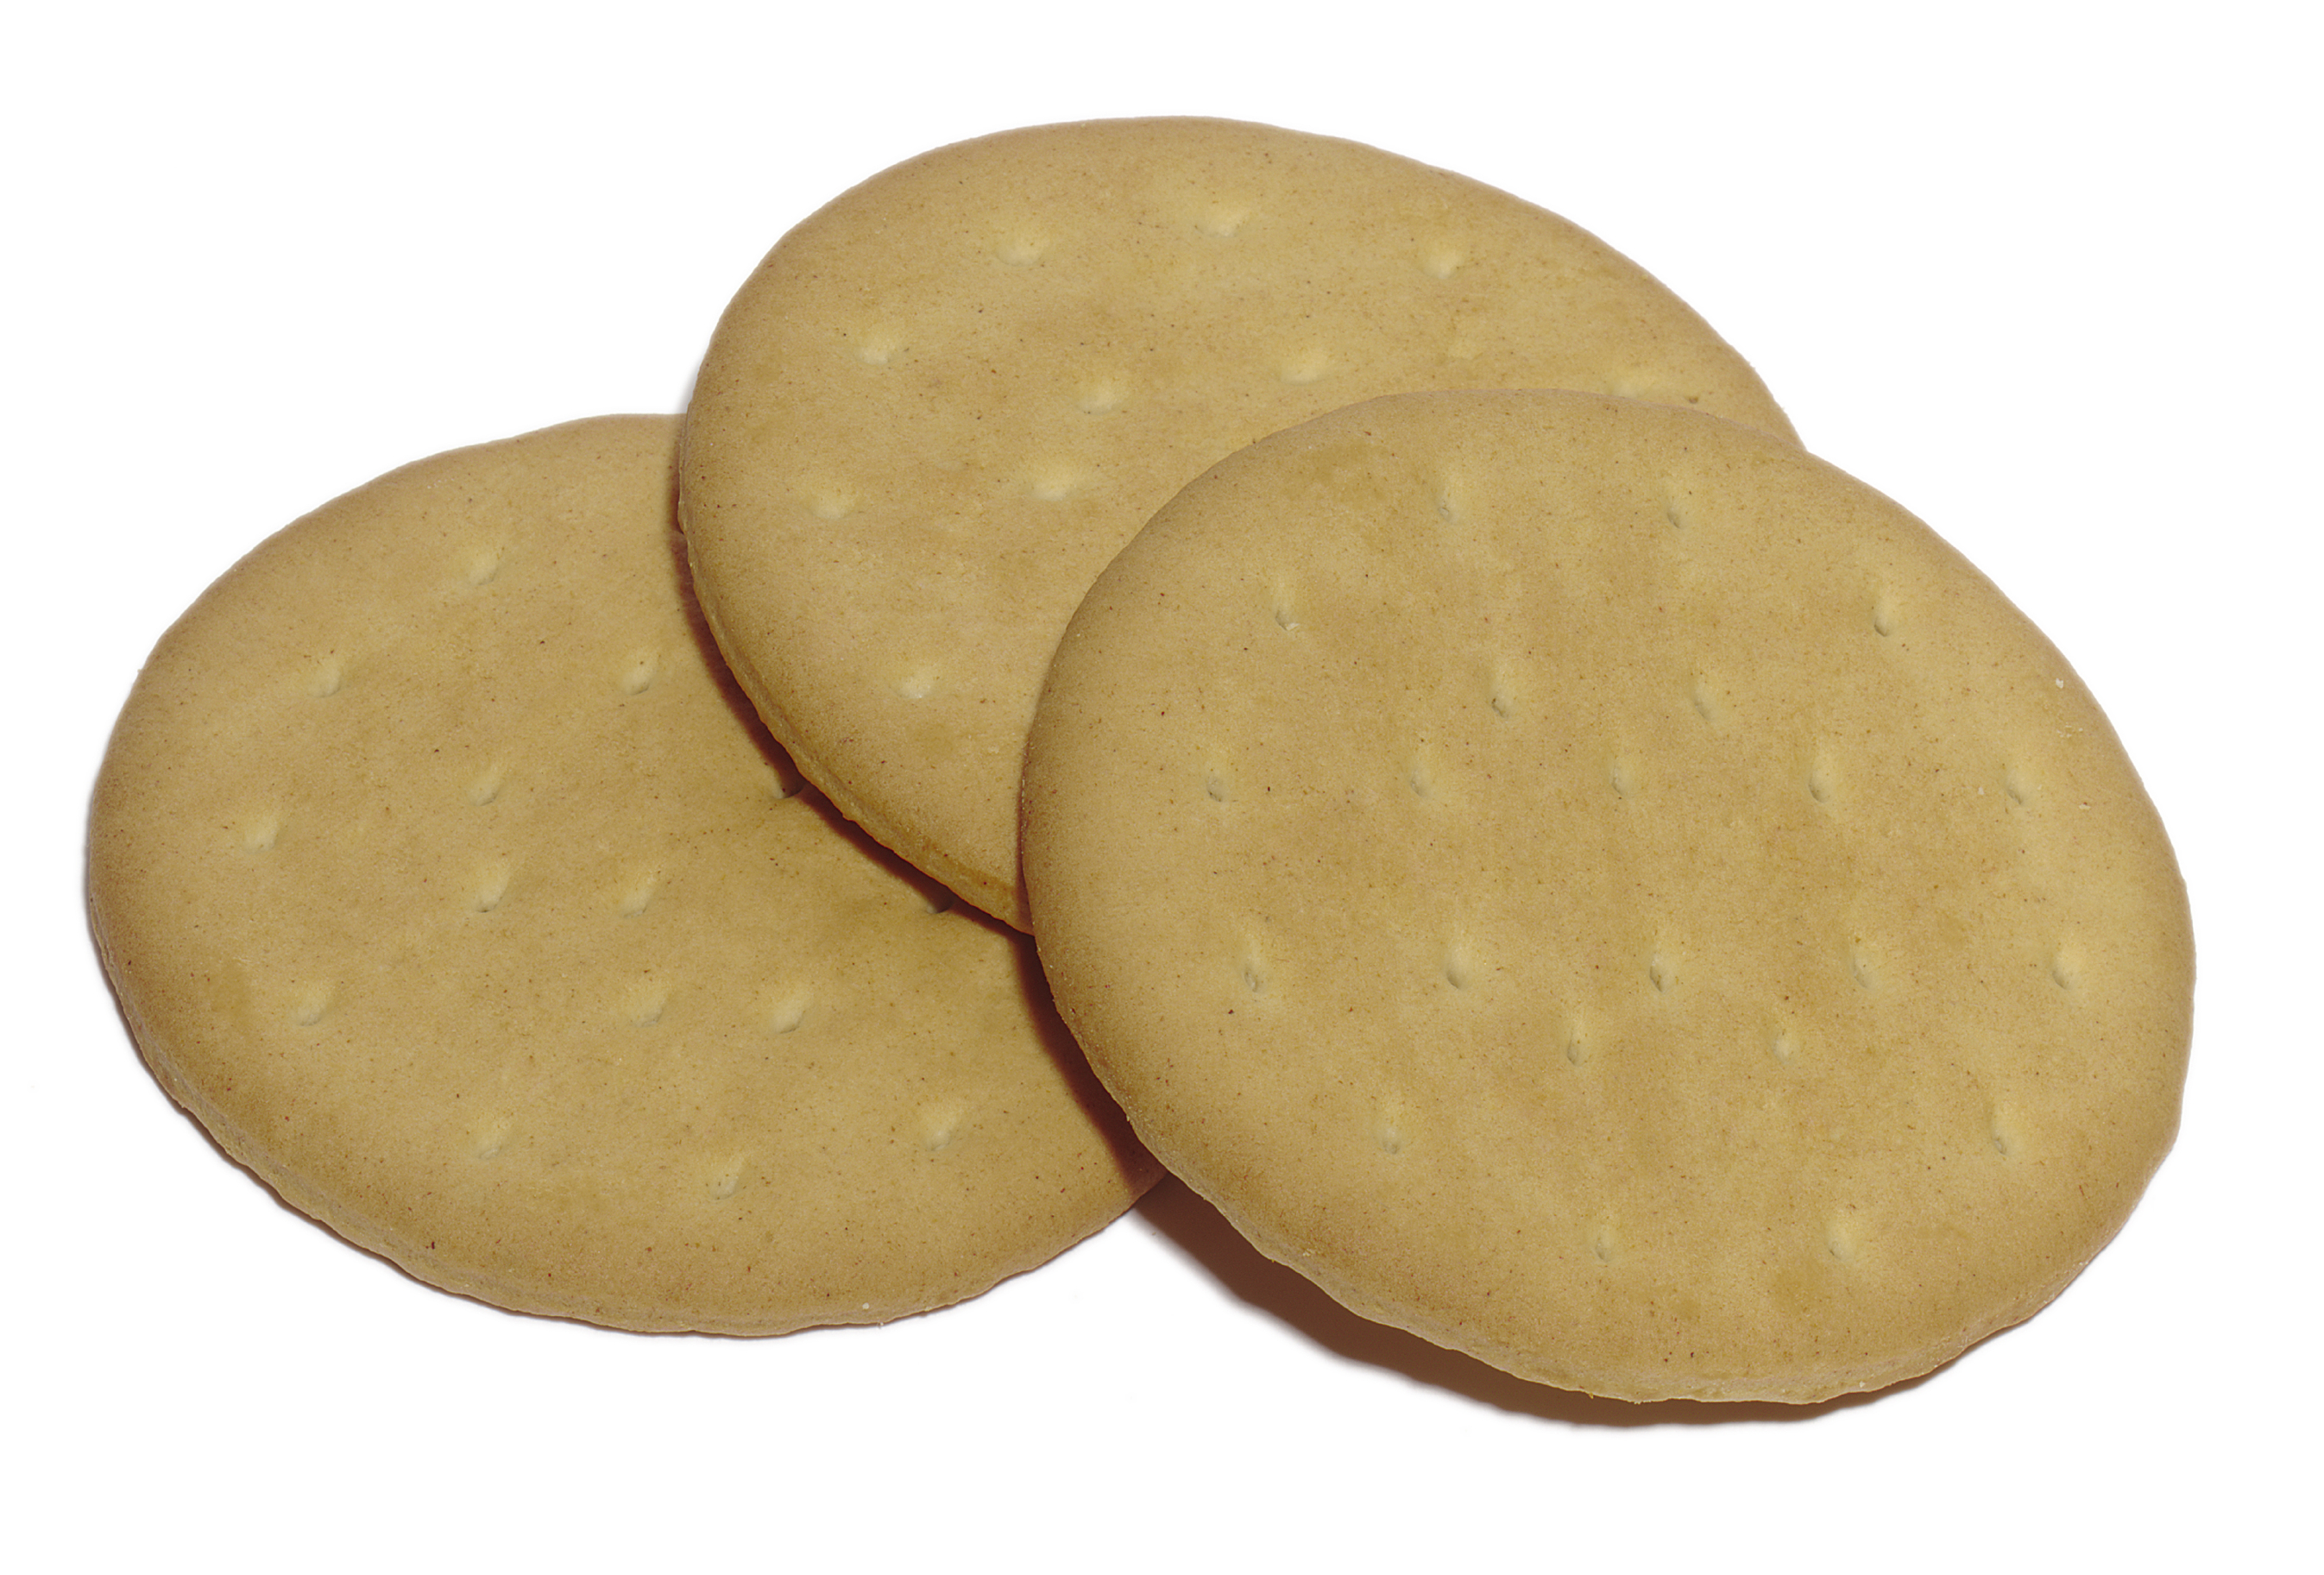 Three rich-tea biscuits on a white background.